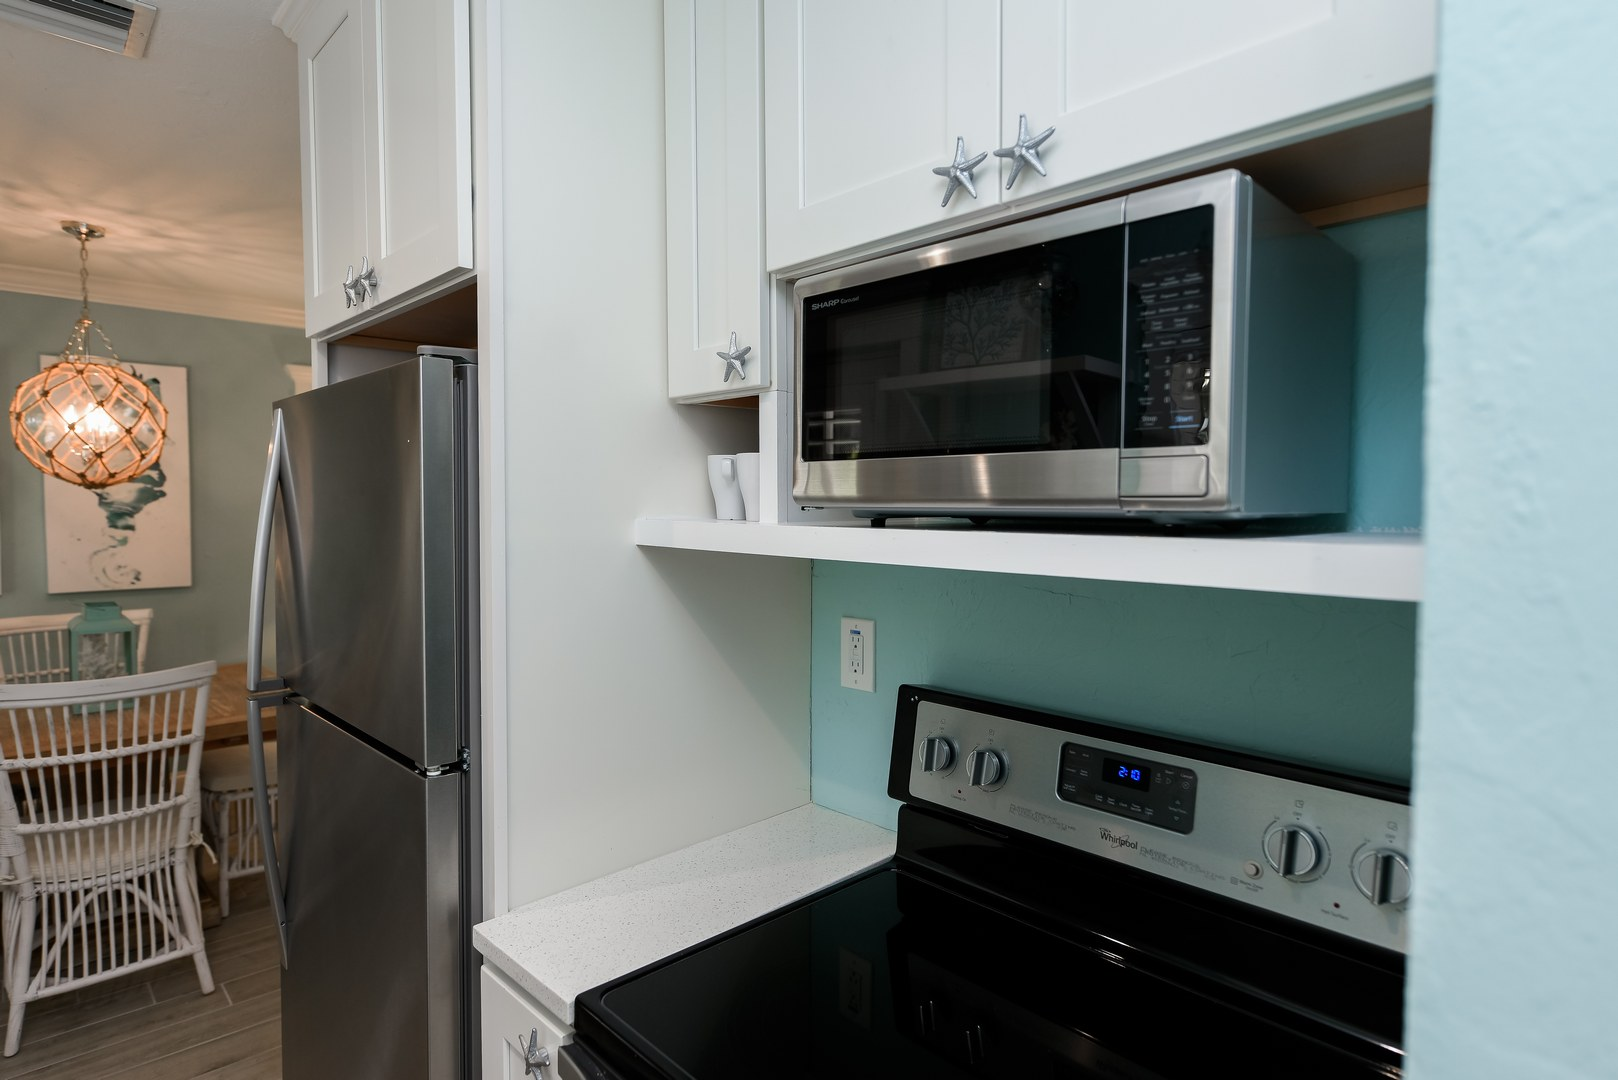 Stainless Steel Appliances in Full Kitchen